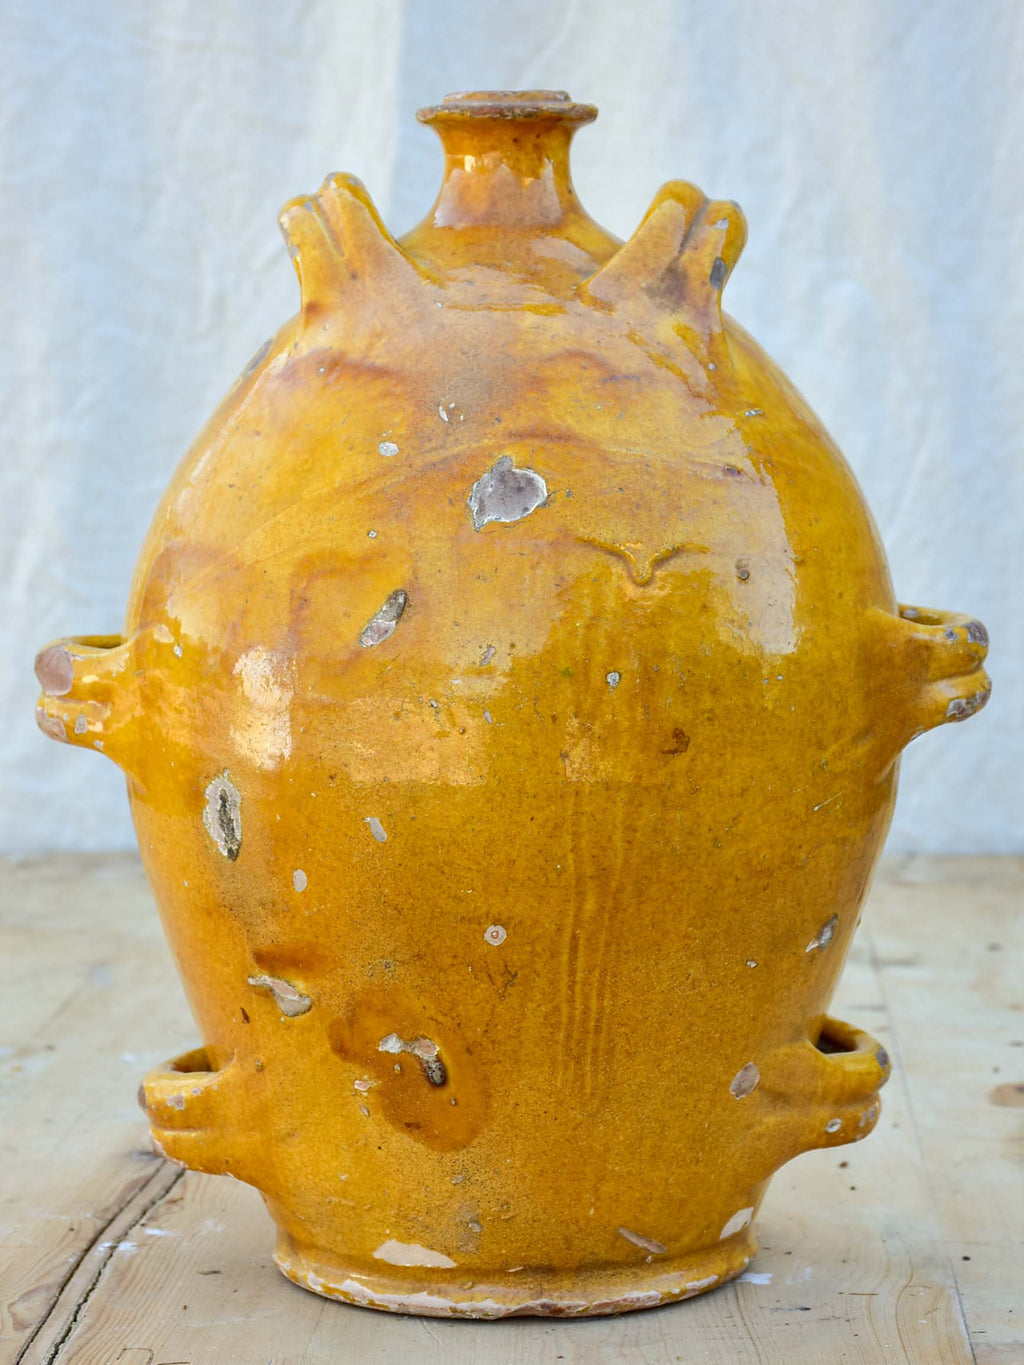 Antique French conscience water jug with yellow glaze